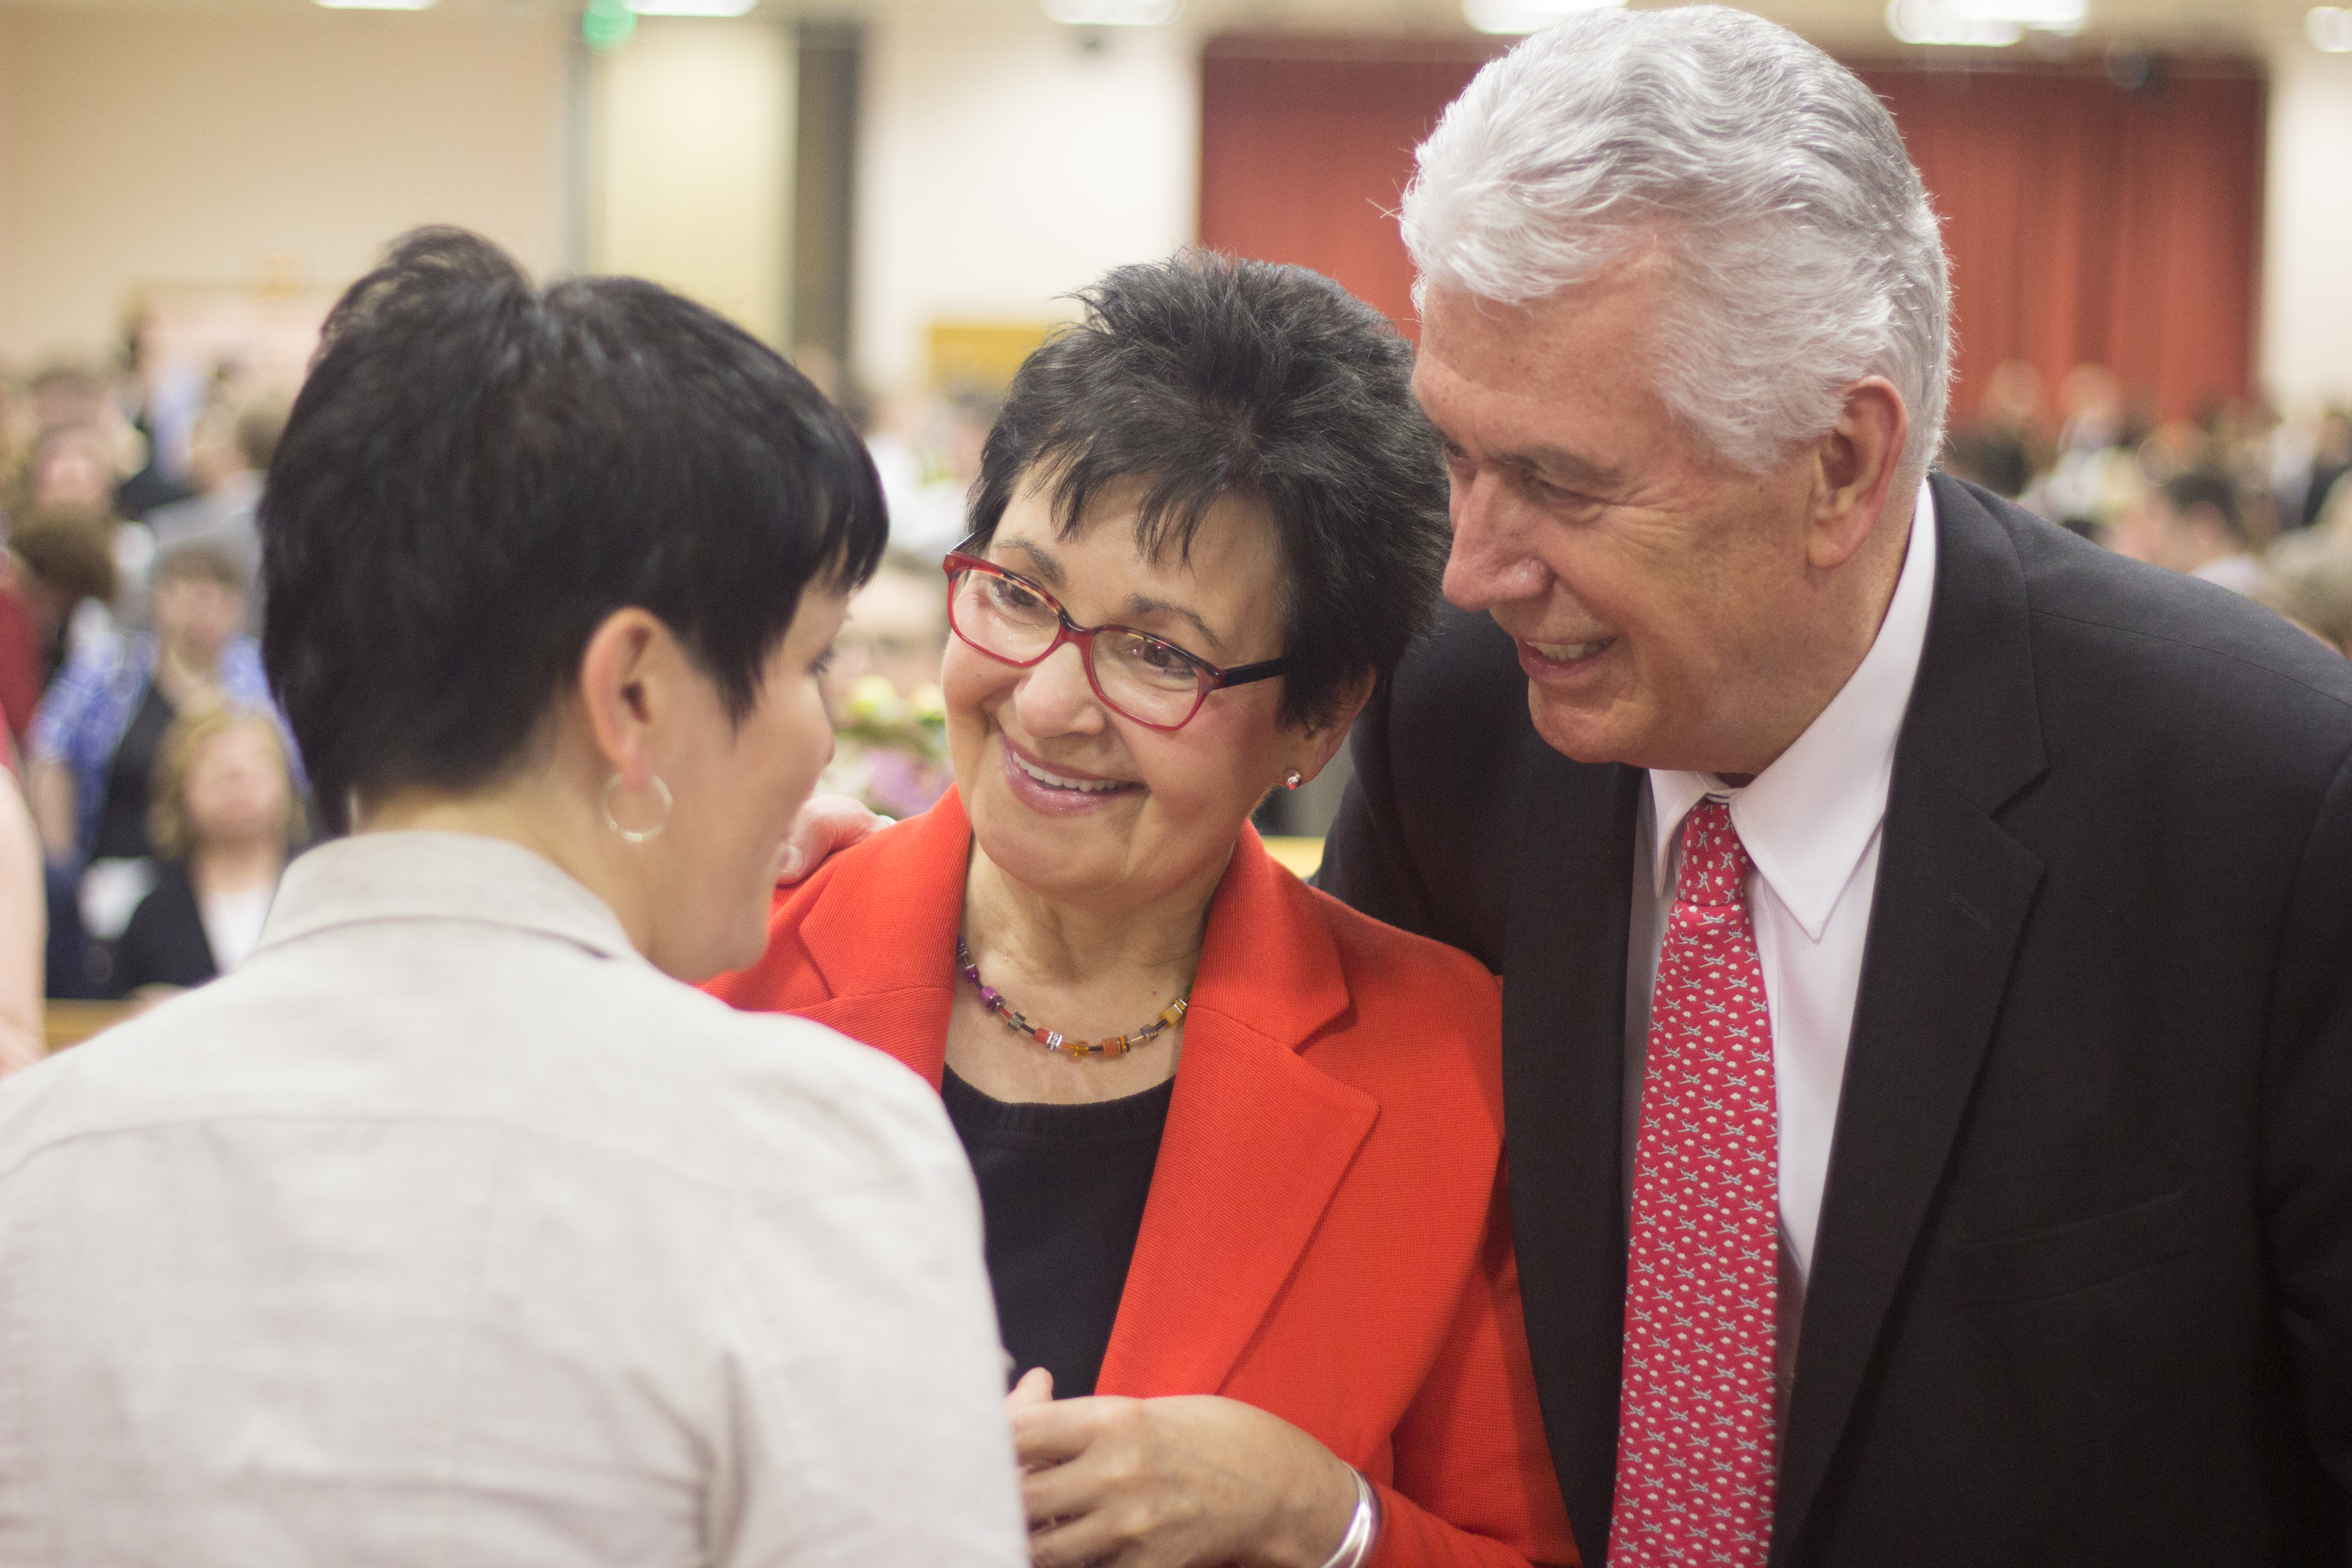 Elder Dieter F. Uchtdorf of the Quorum of the Twelve Apostles and his wife, Sister Harriet Uchtdorf, visit with a woman following the April 26, 2018, devotional with members in St. Petersburg, Russia.